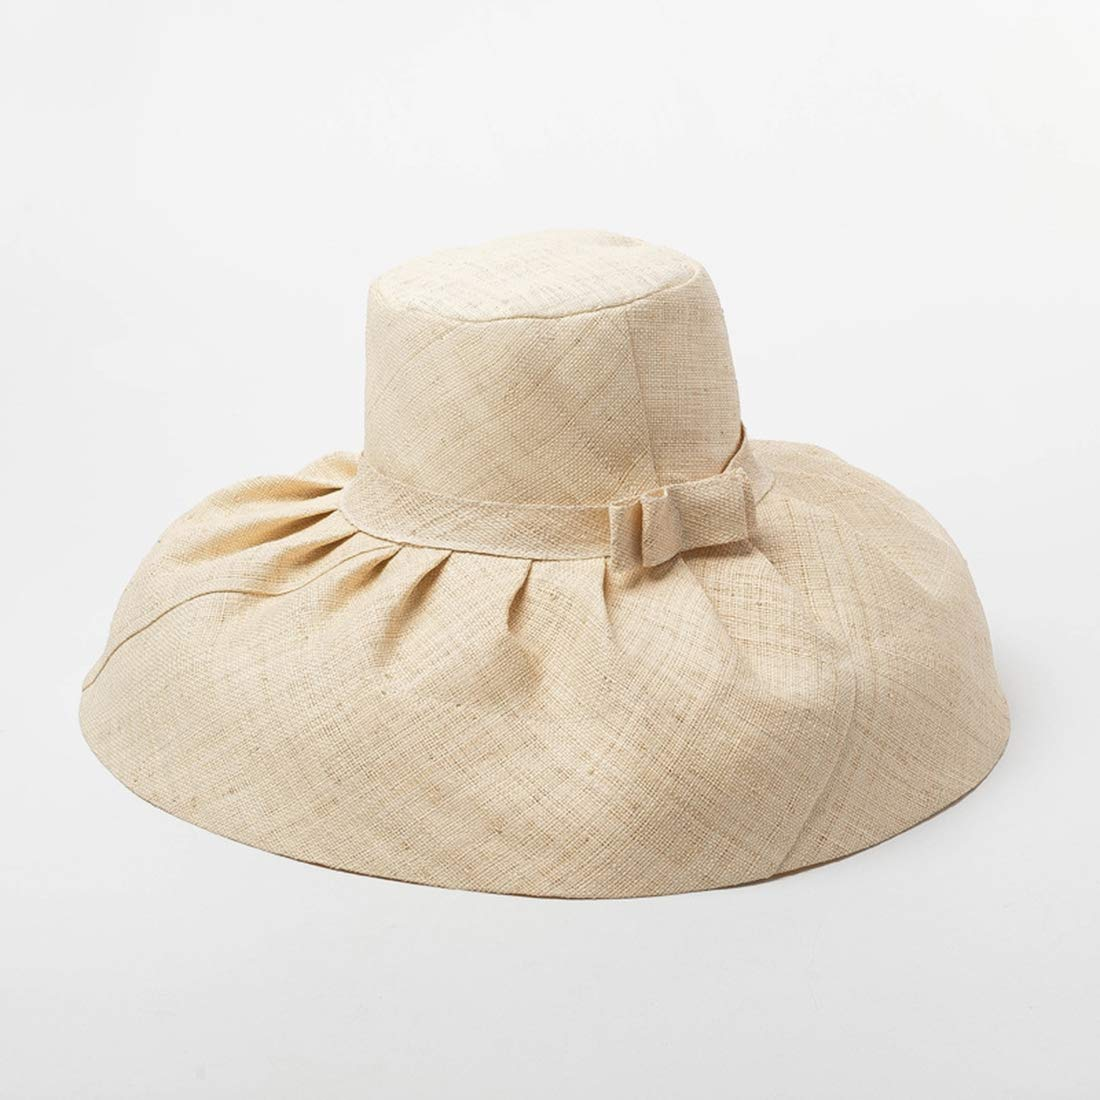 Retro Raffia Straw Sunhat for Women Wide Brim Cap Travel Blocking Sun Hat Pleated Bow hat Weaving Beach Straw Hat Summer